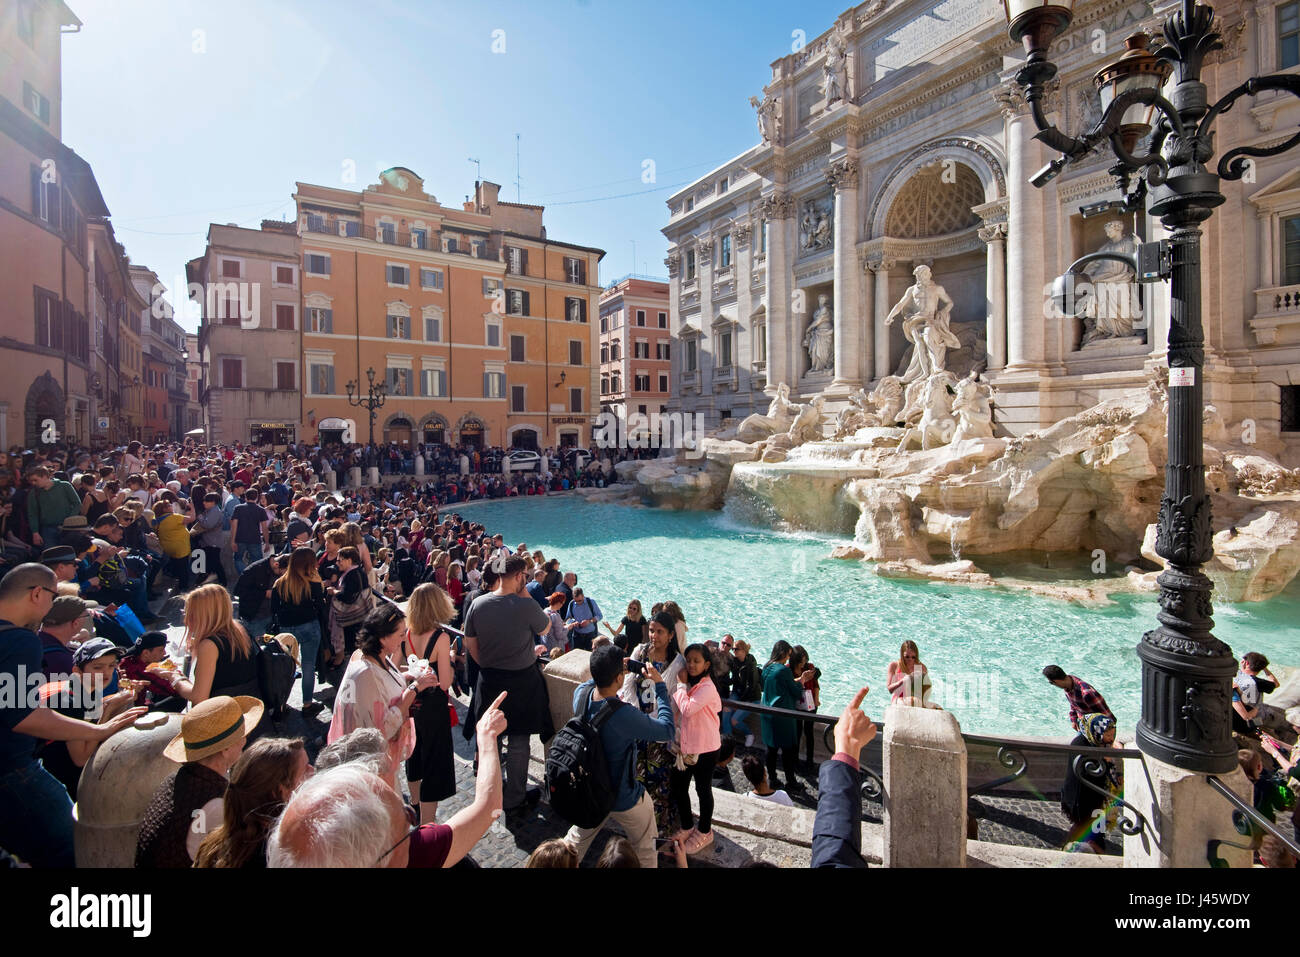 The Trevi Fountain 'Fontana di Trevi' in Rome with crowds of tourists and visitors on a sunny day with blue - Stock Image